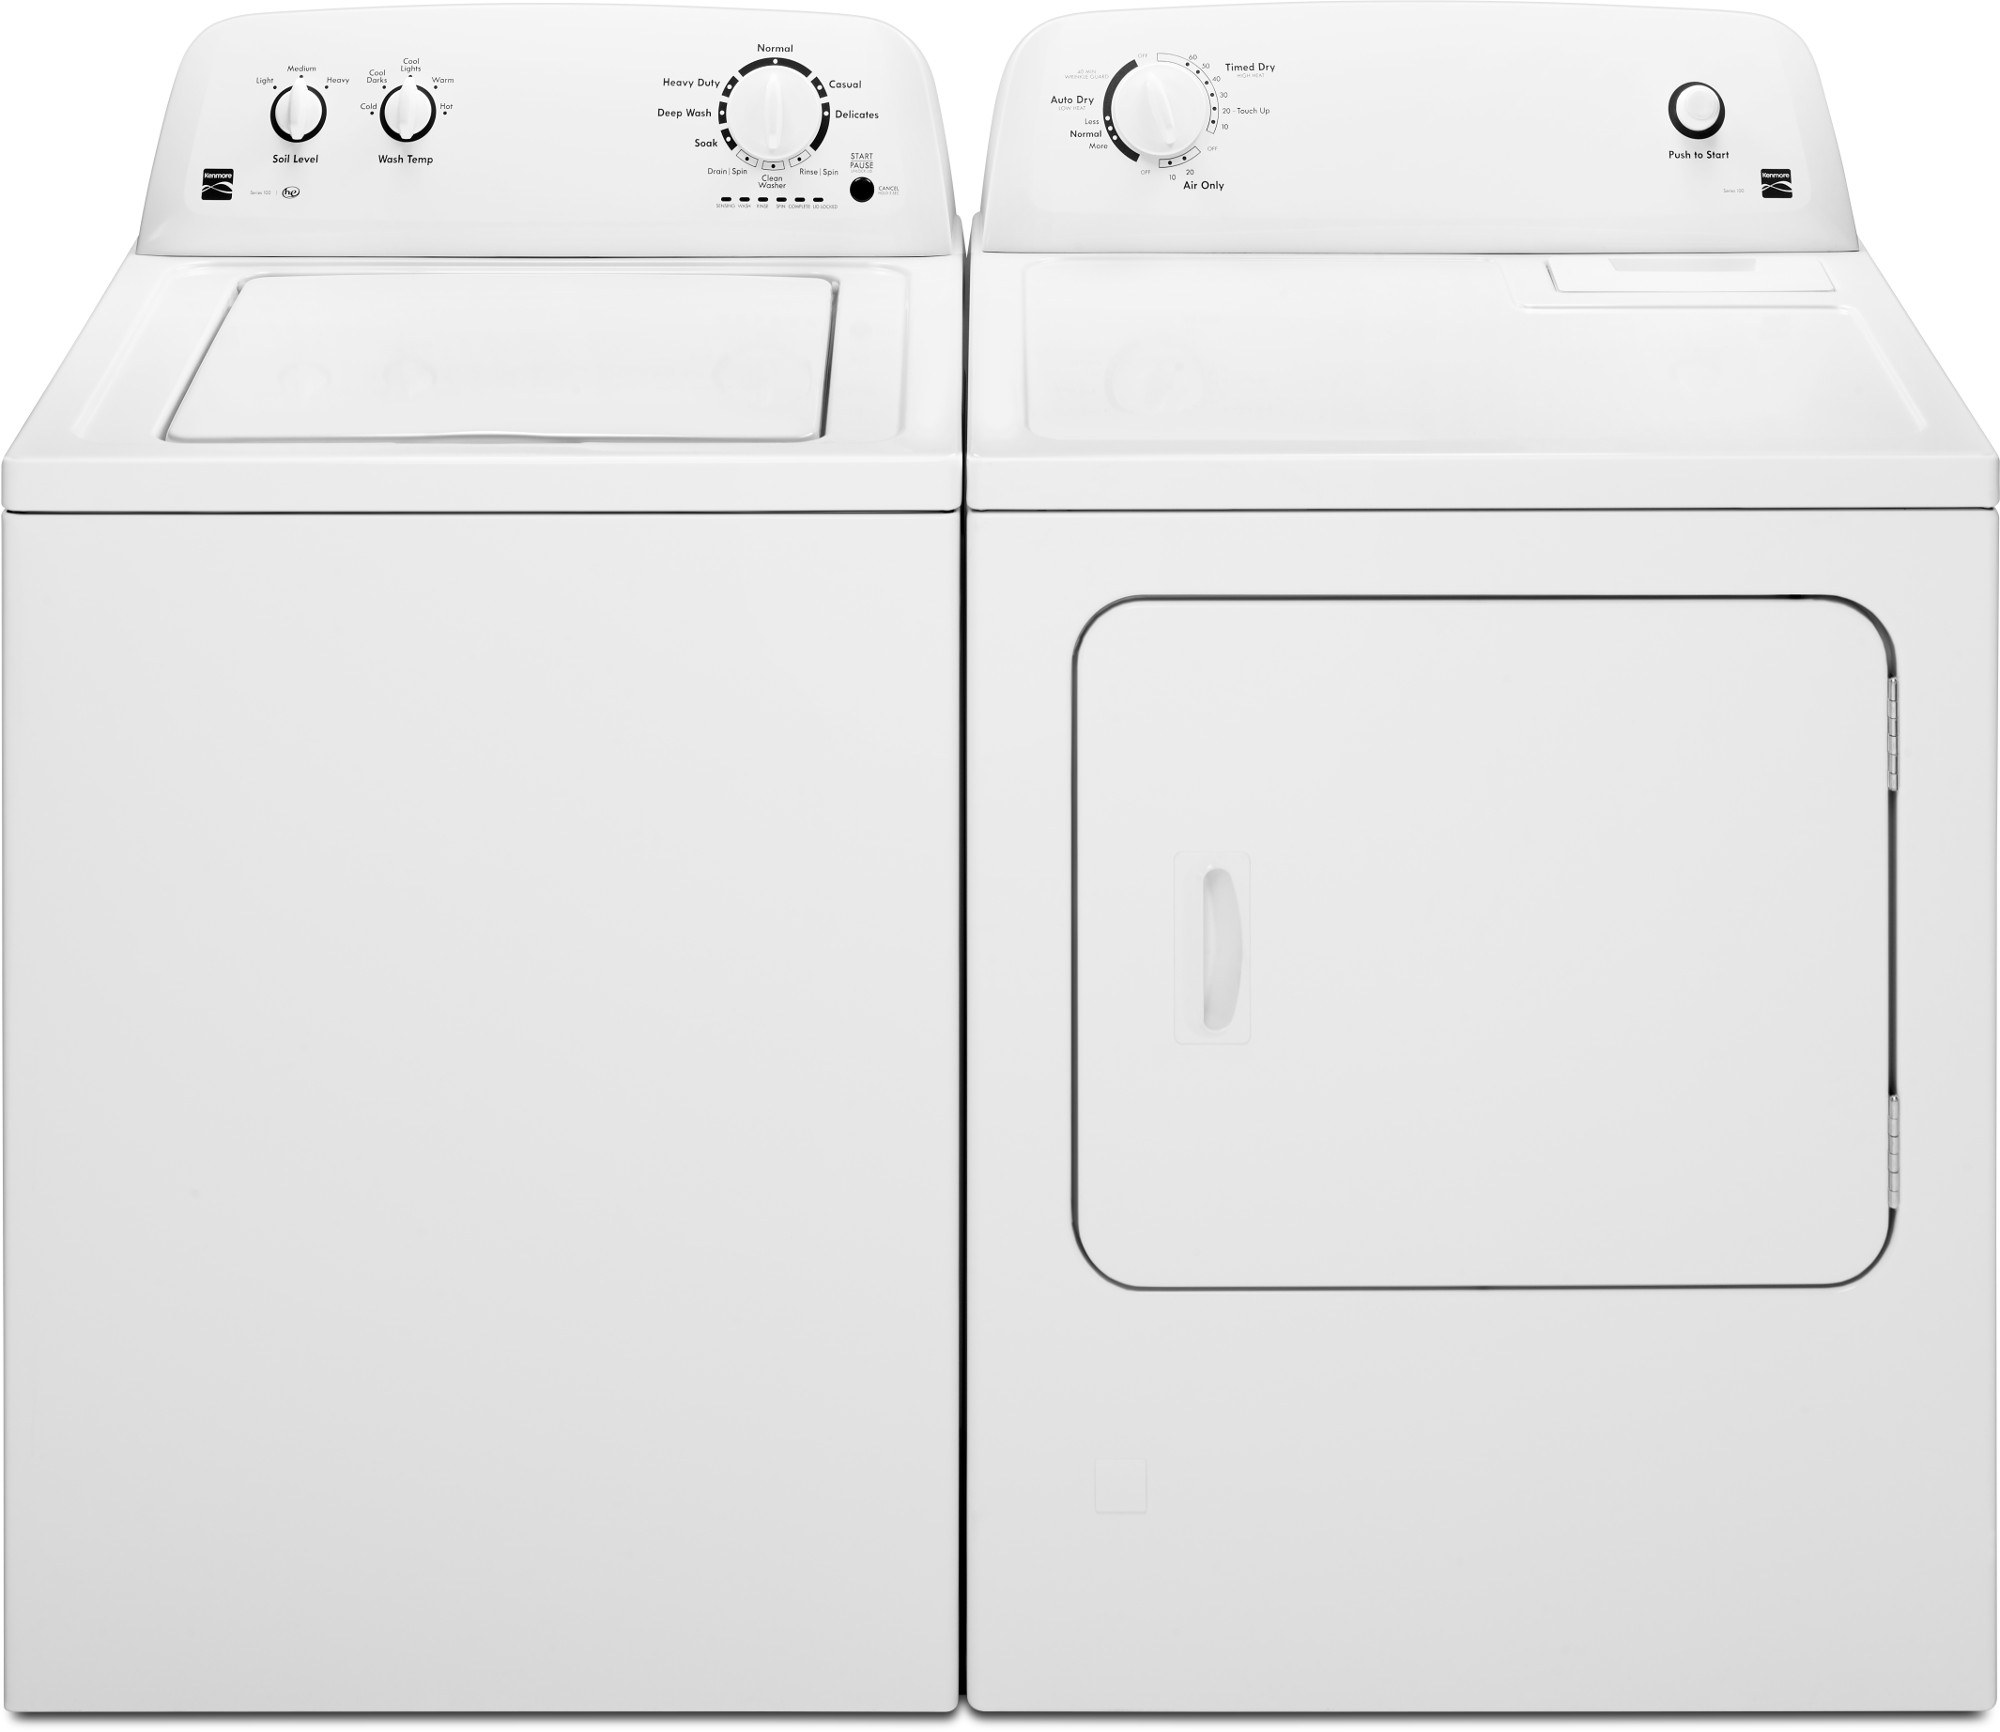 Kenmore 70222 6.5 cu. ft. Gas Dryer - White